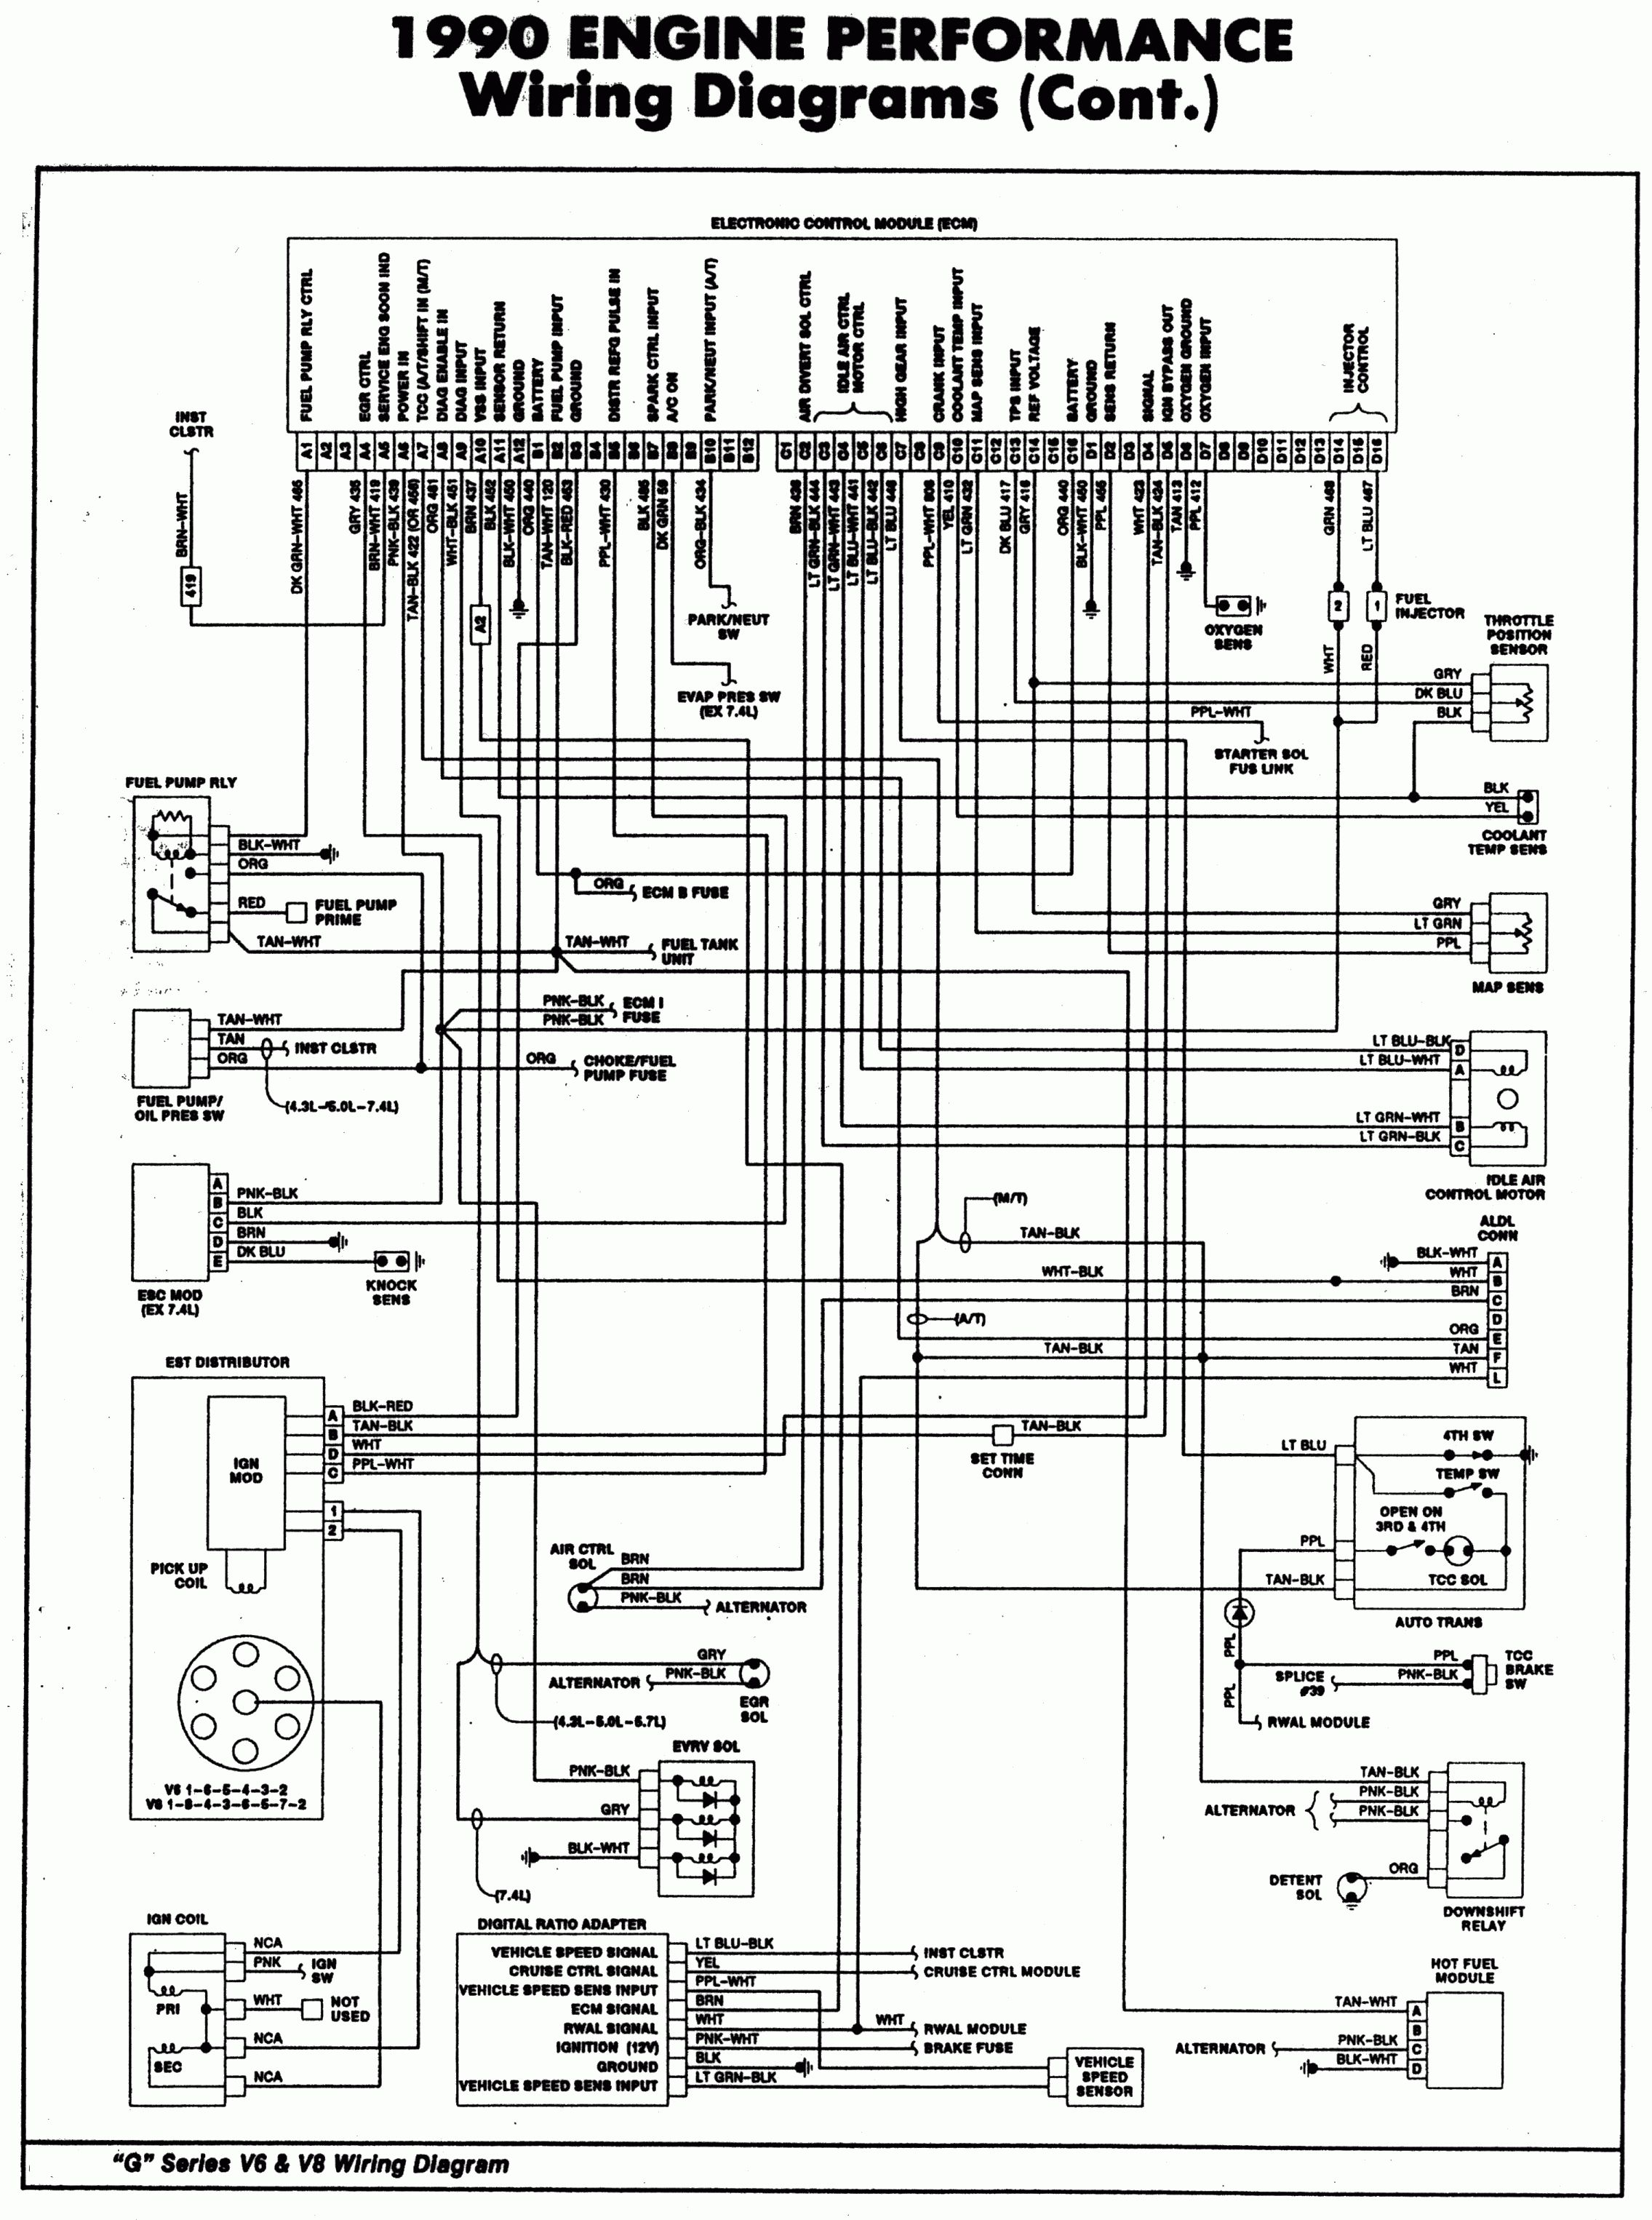 Incredible 1990 Engine Performance Wiring Diagram With Control Module And Wiring Digital Resources Indicompassionincorg